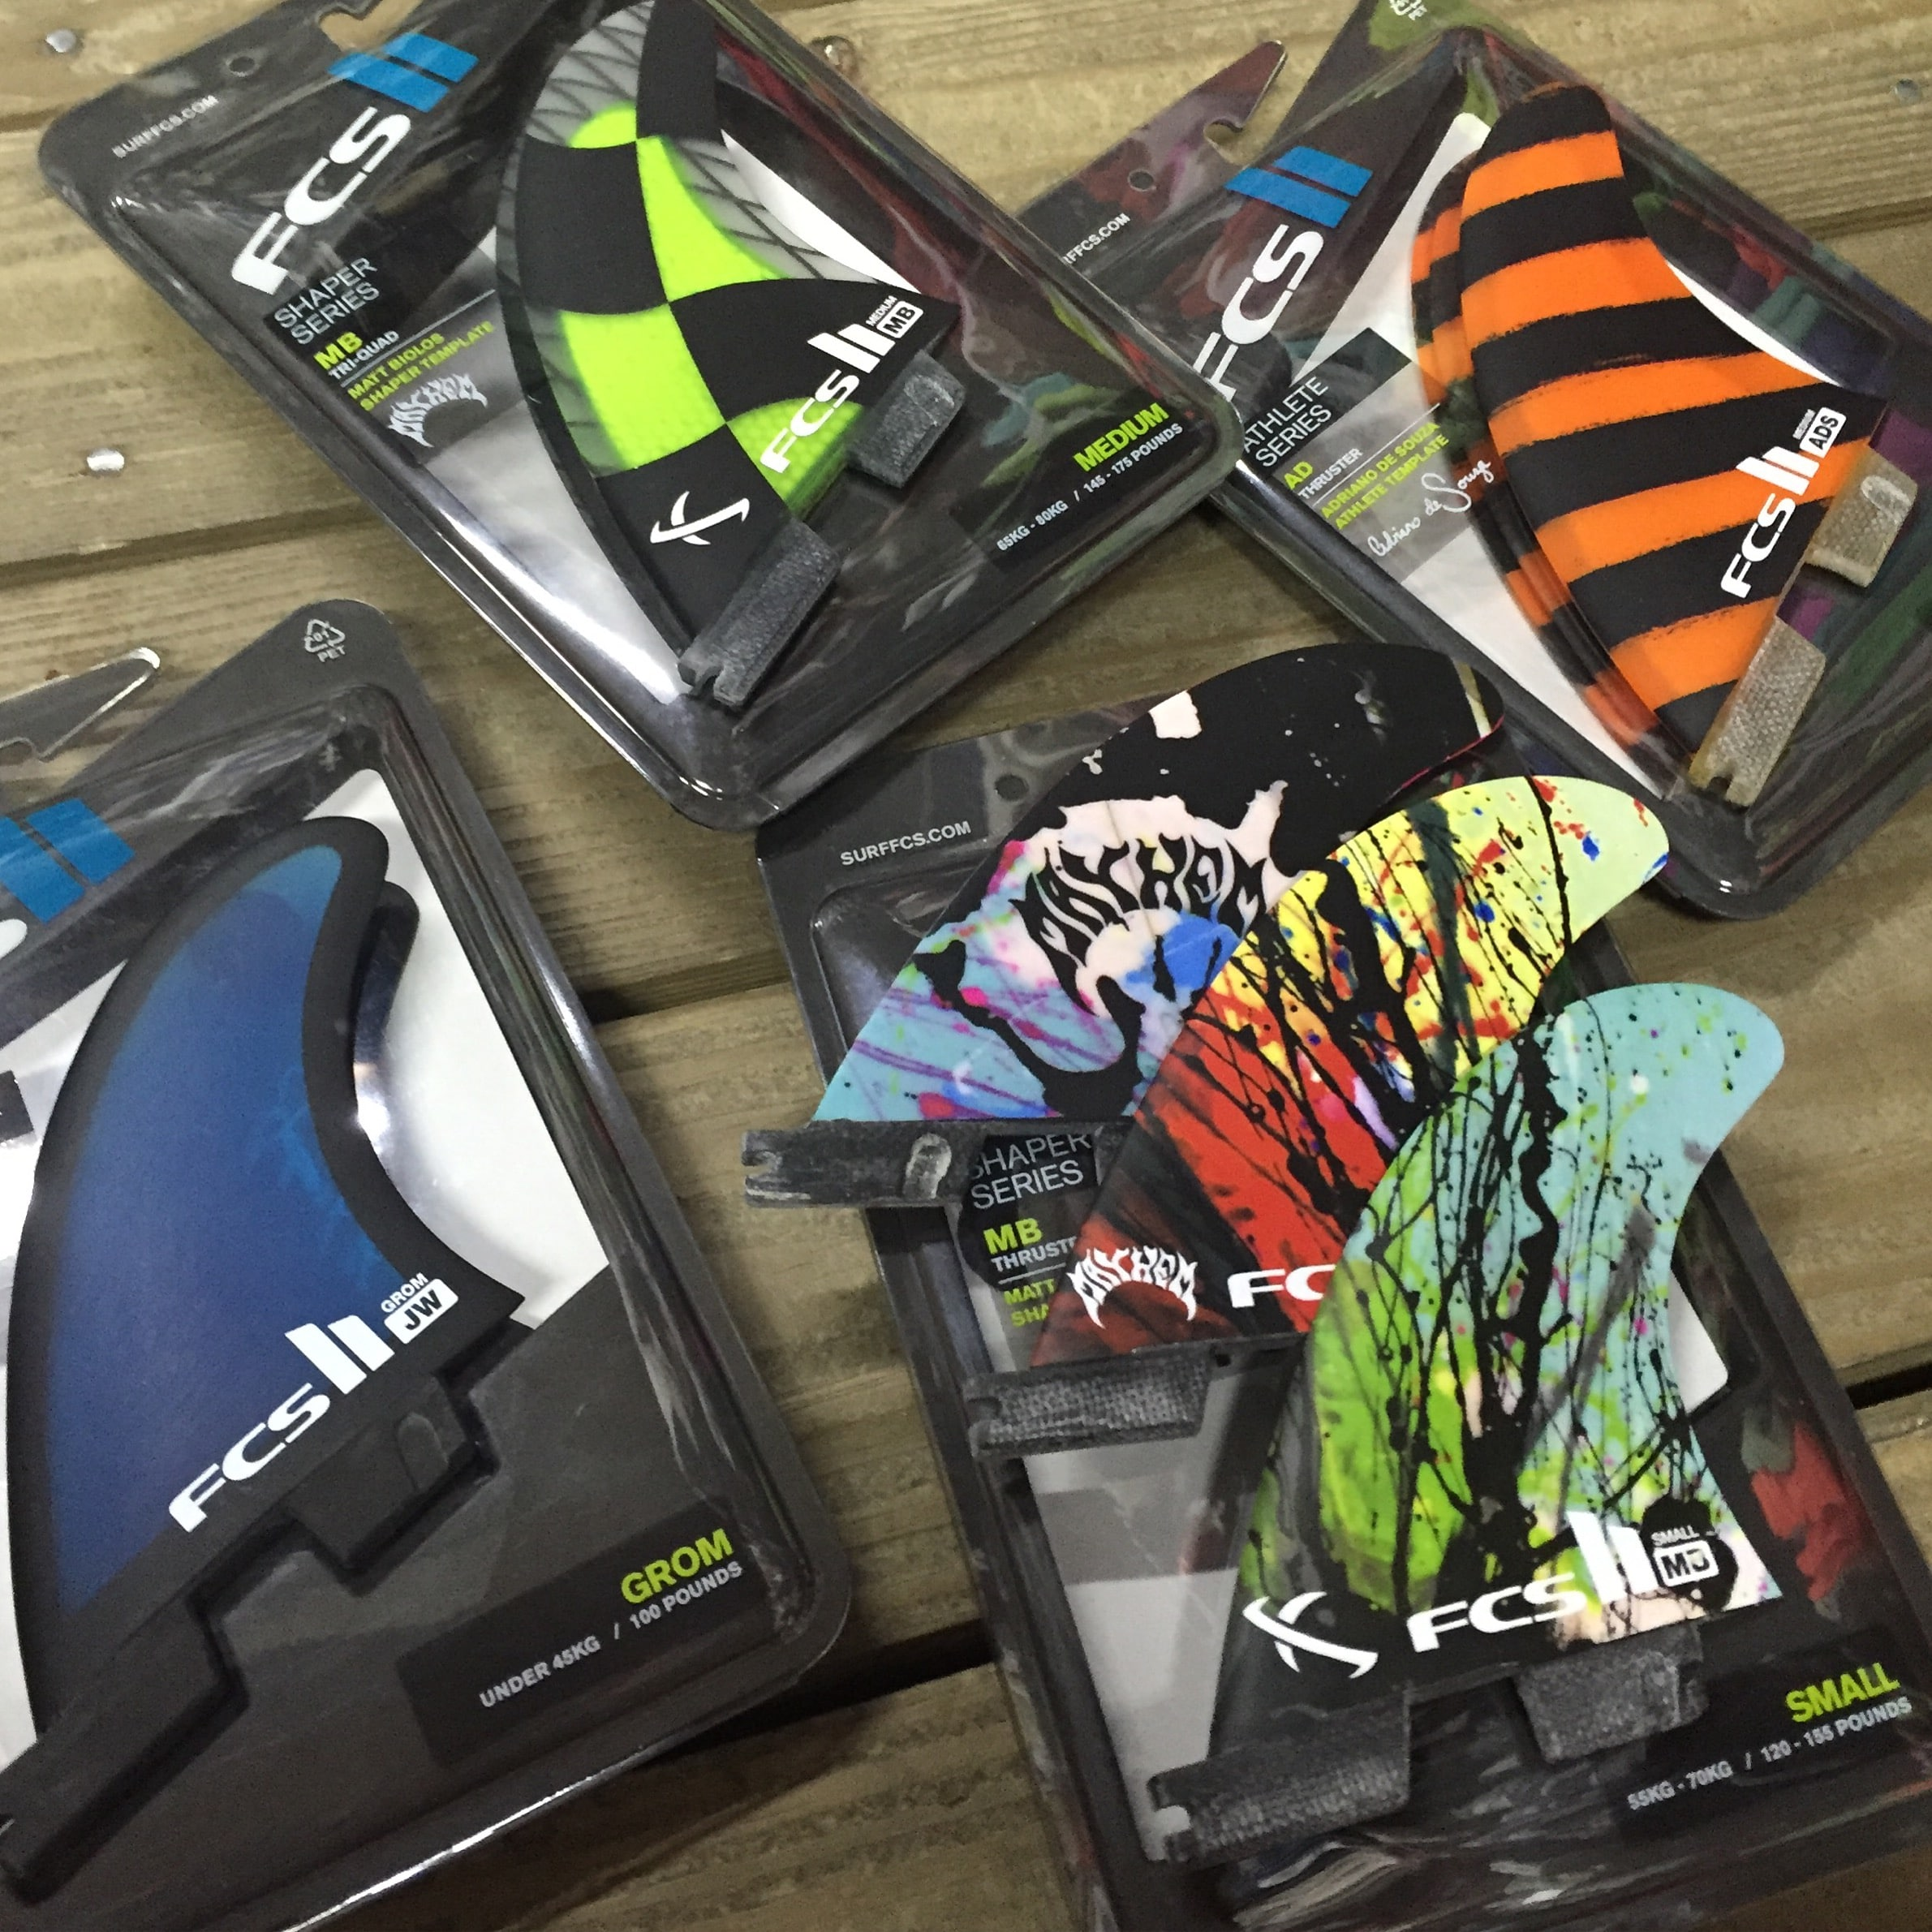 The latest arrivals in FCS II fins, including the Julian Wilson from fins, Matt Biolos in small, and medium five fin set, and the Adriano De Souza signature fin!